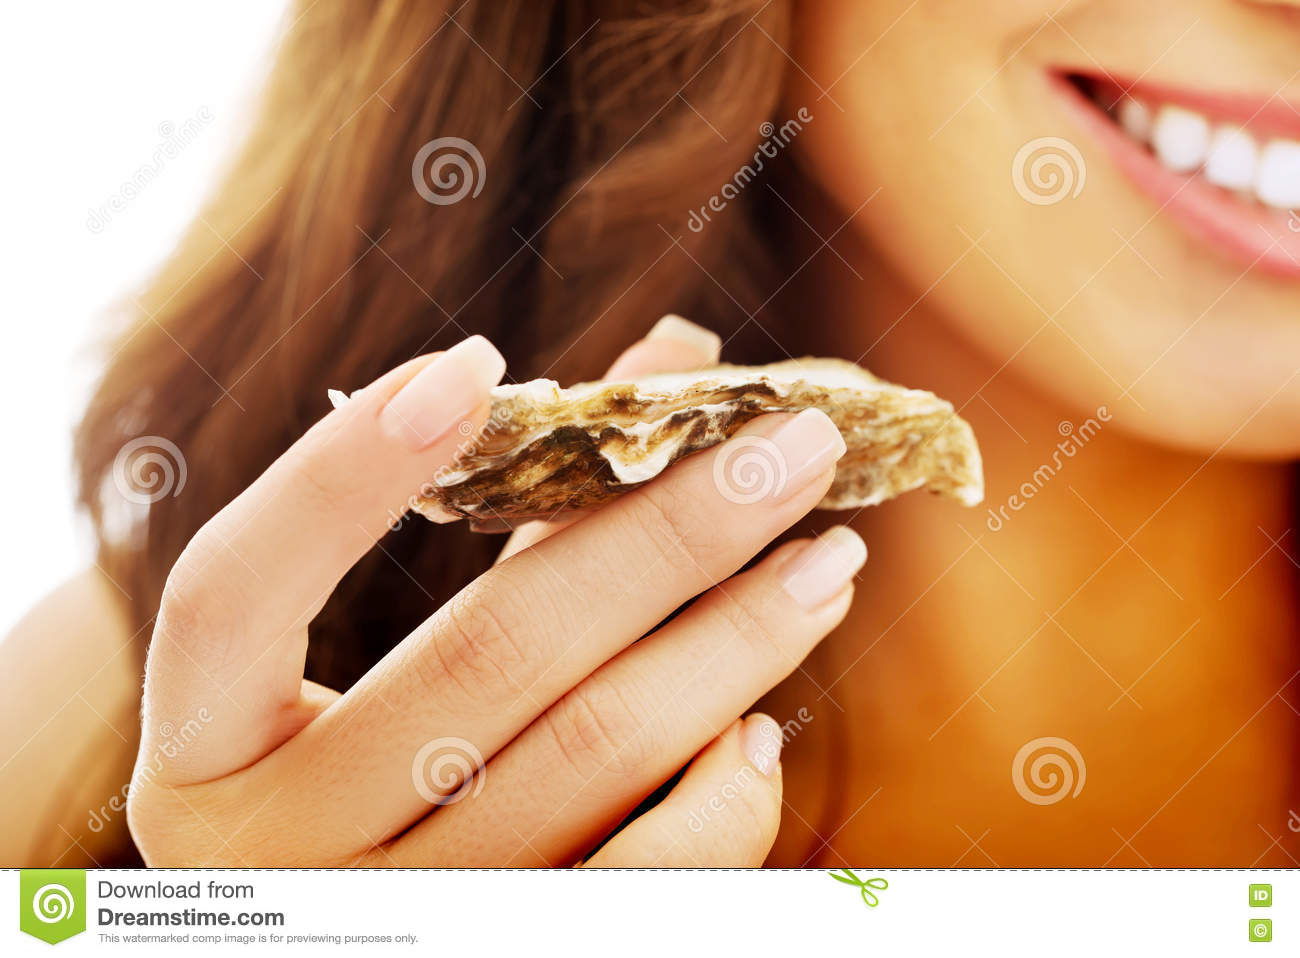 Woman eating shellfish.